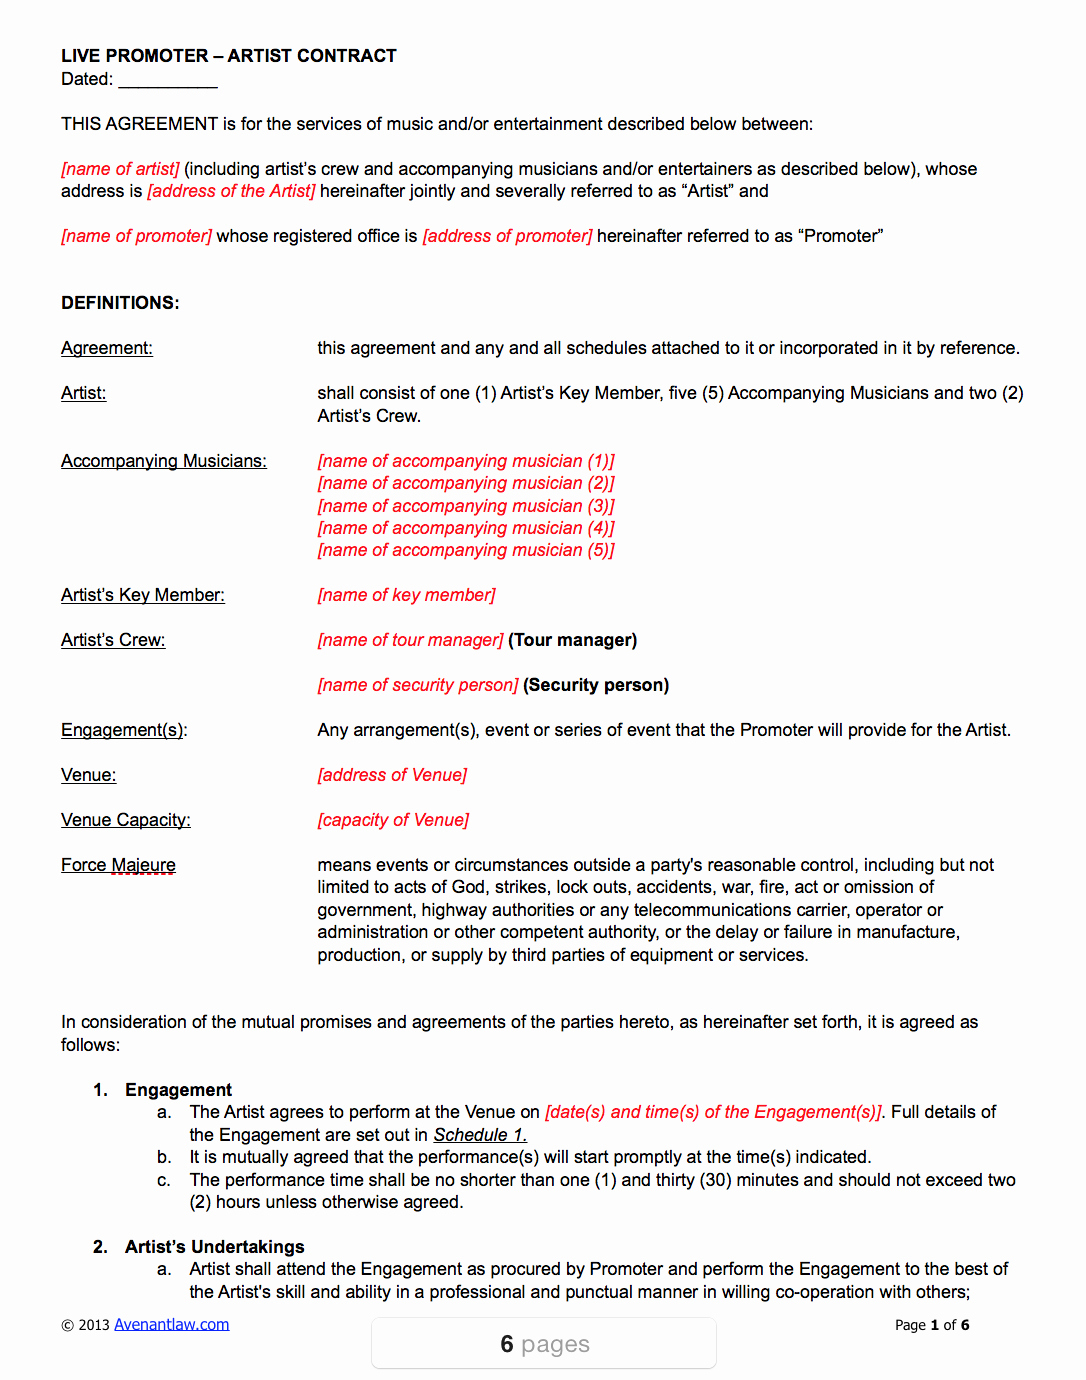 Artist Performance Contract Template Fresh Live Promoter Artist Contract Template